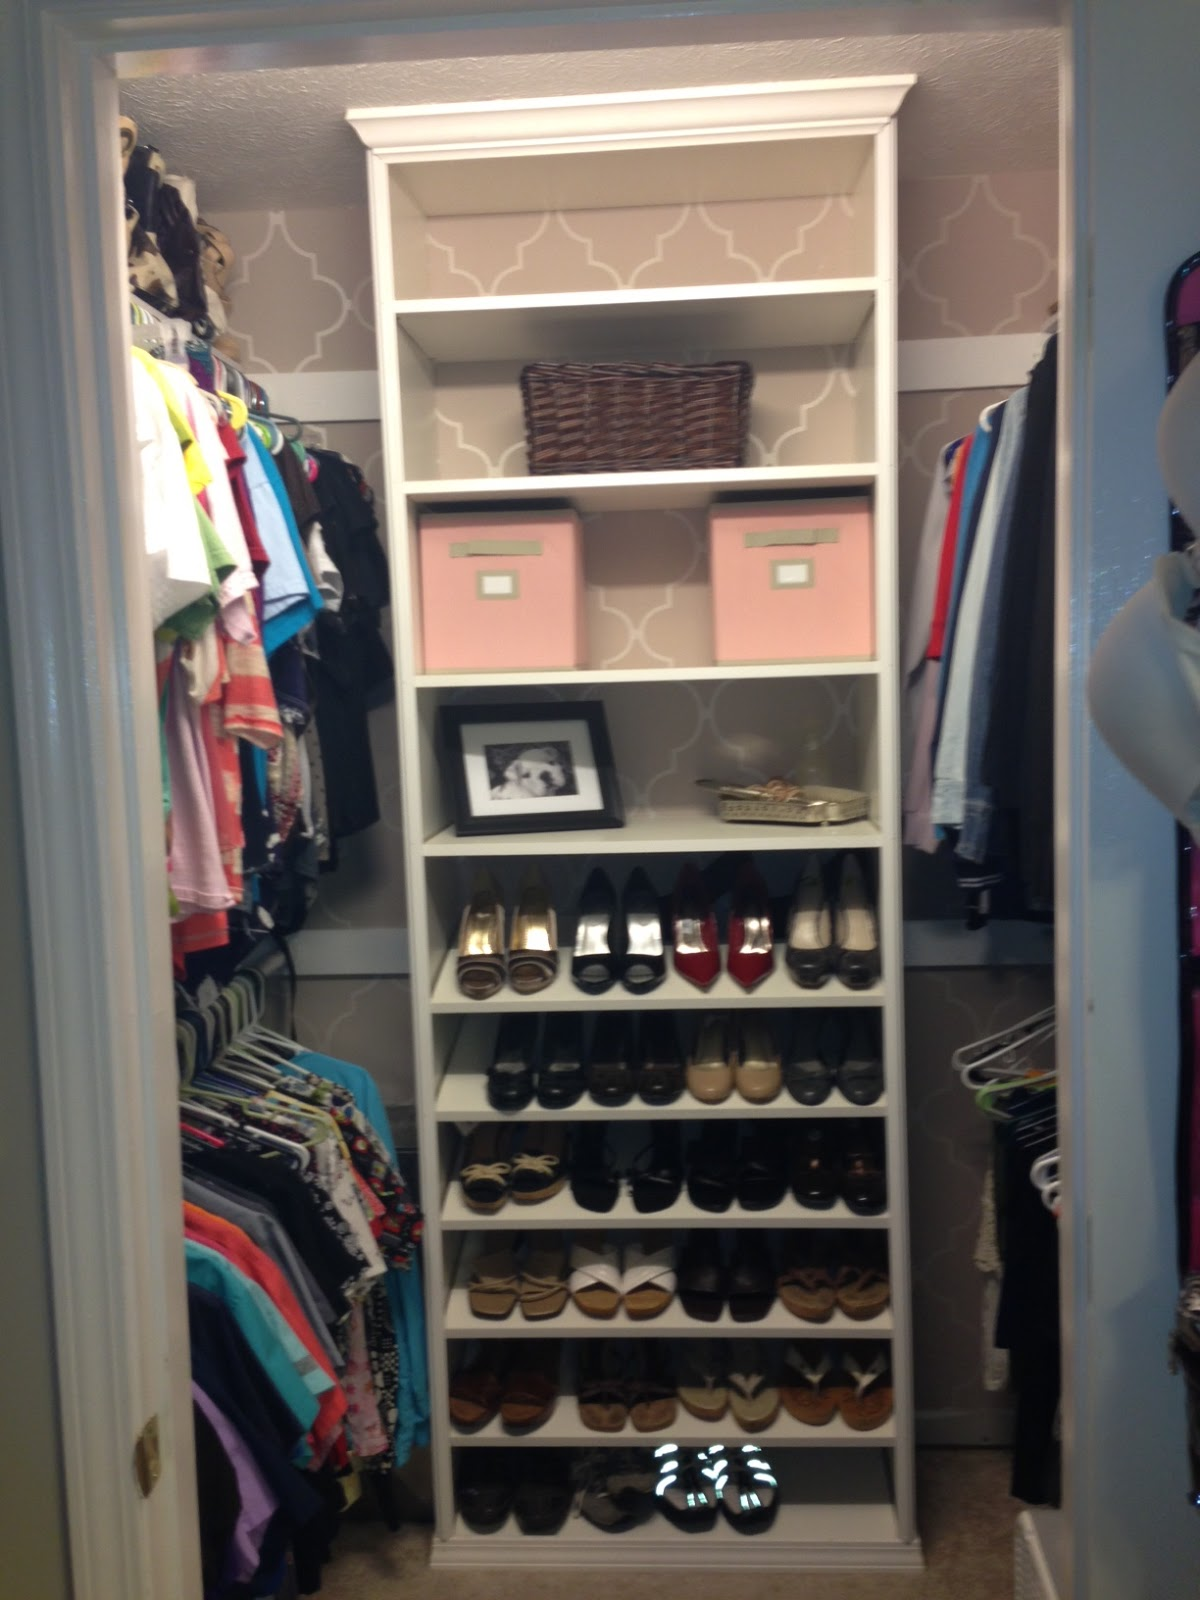 Polka dots & Pooches: DIY Custom Closet